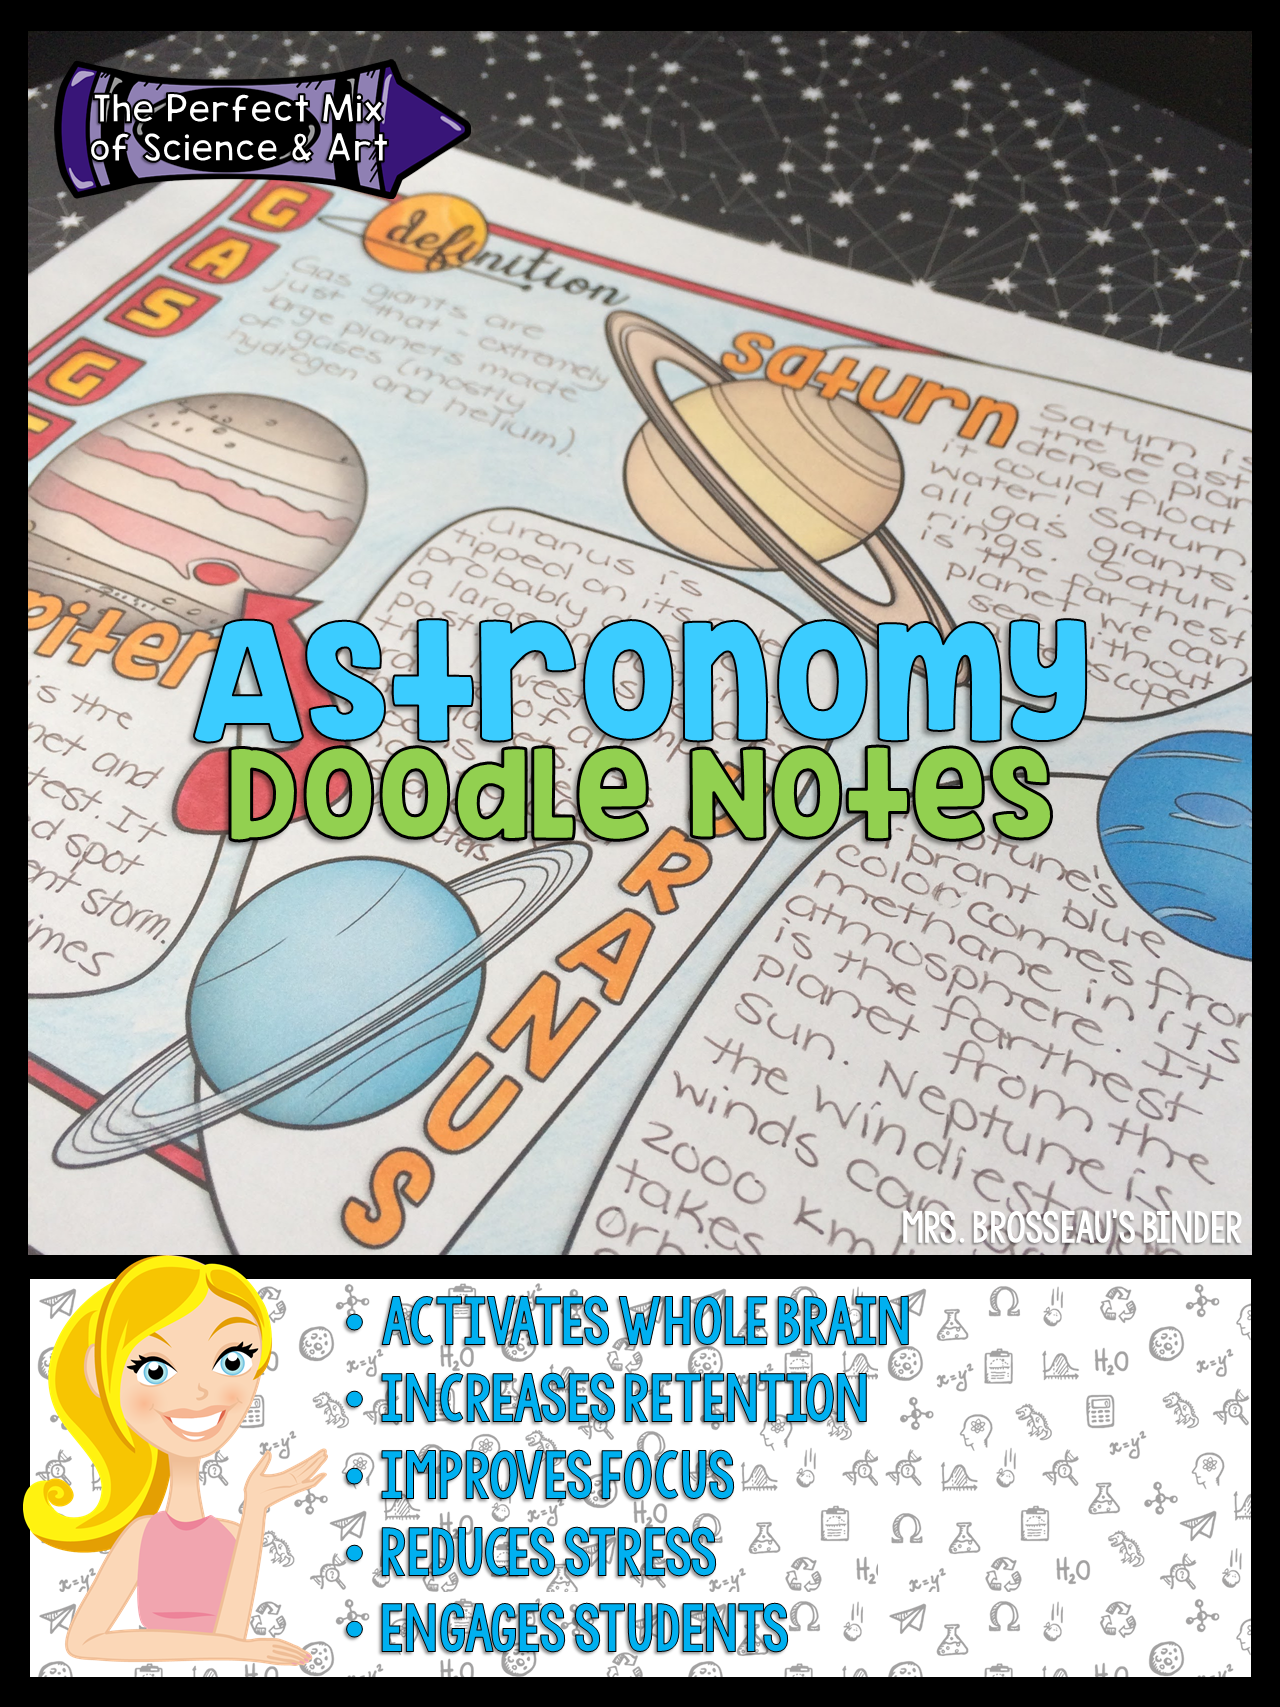 Astronomy Doodle Notes Use Dual Coding To Activate The Whole Brain Increase Retention Improve